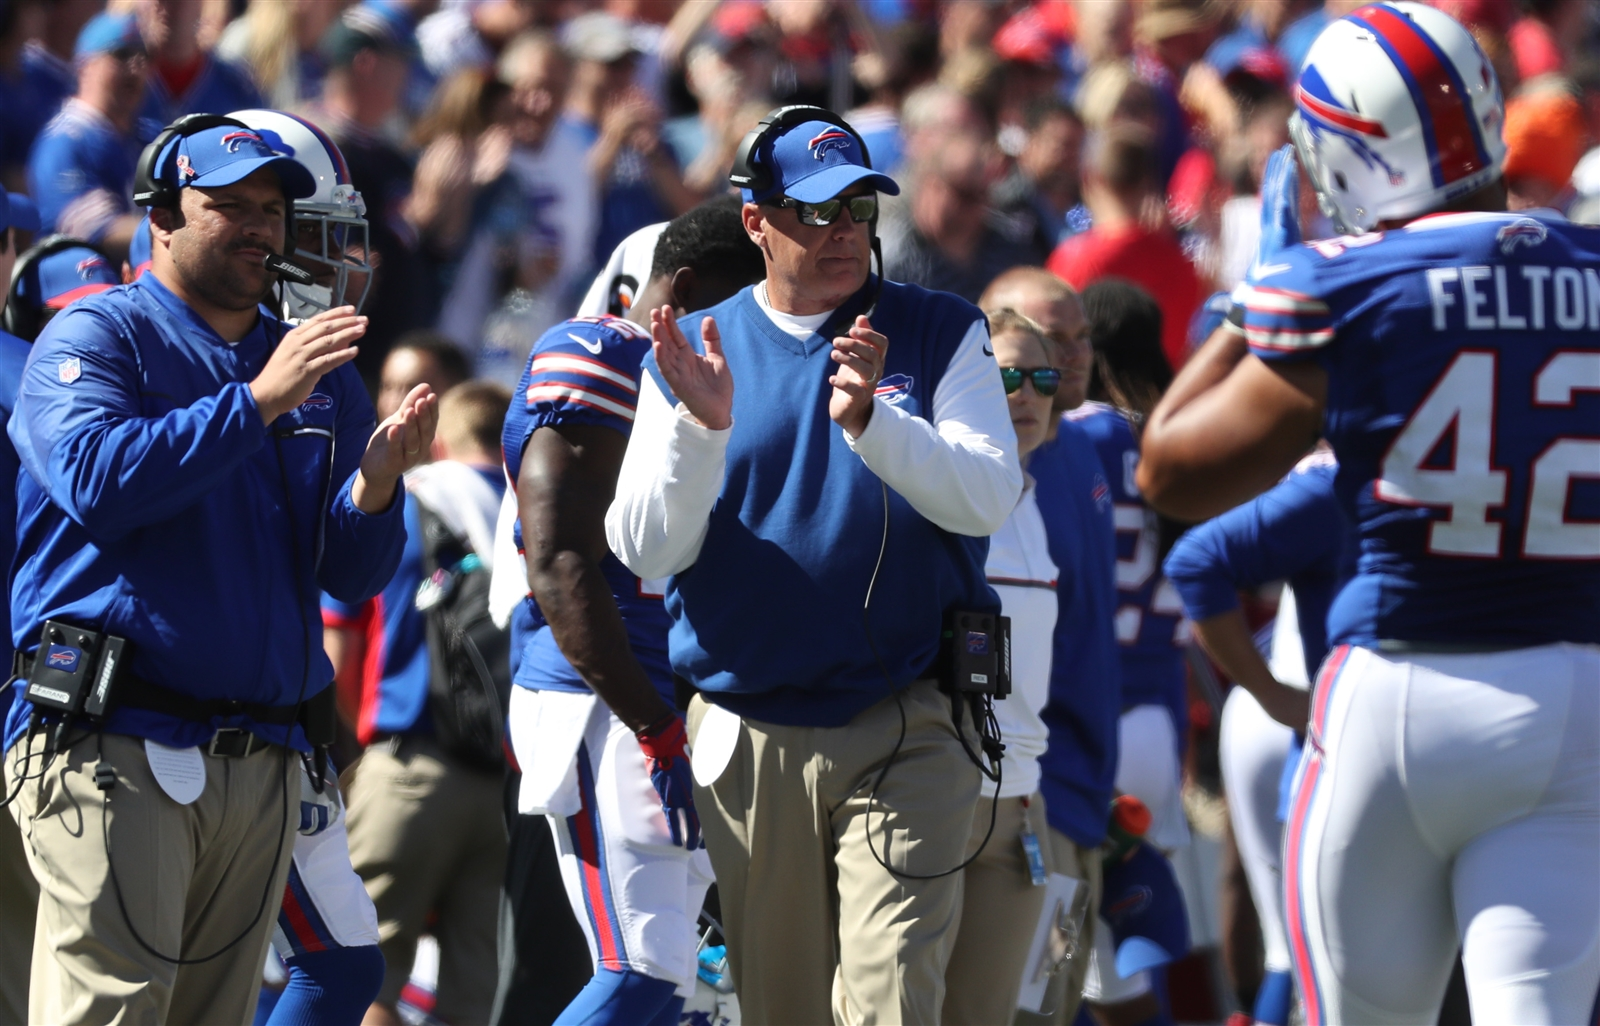 Rex turned out to be right: The Cardinals were just what the Bills needed. (James P. McCoy/Buffalo News)